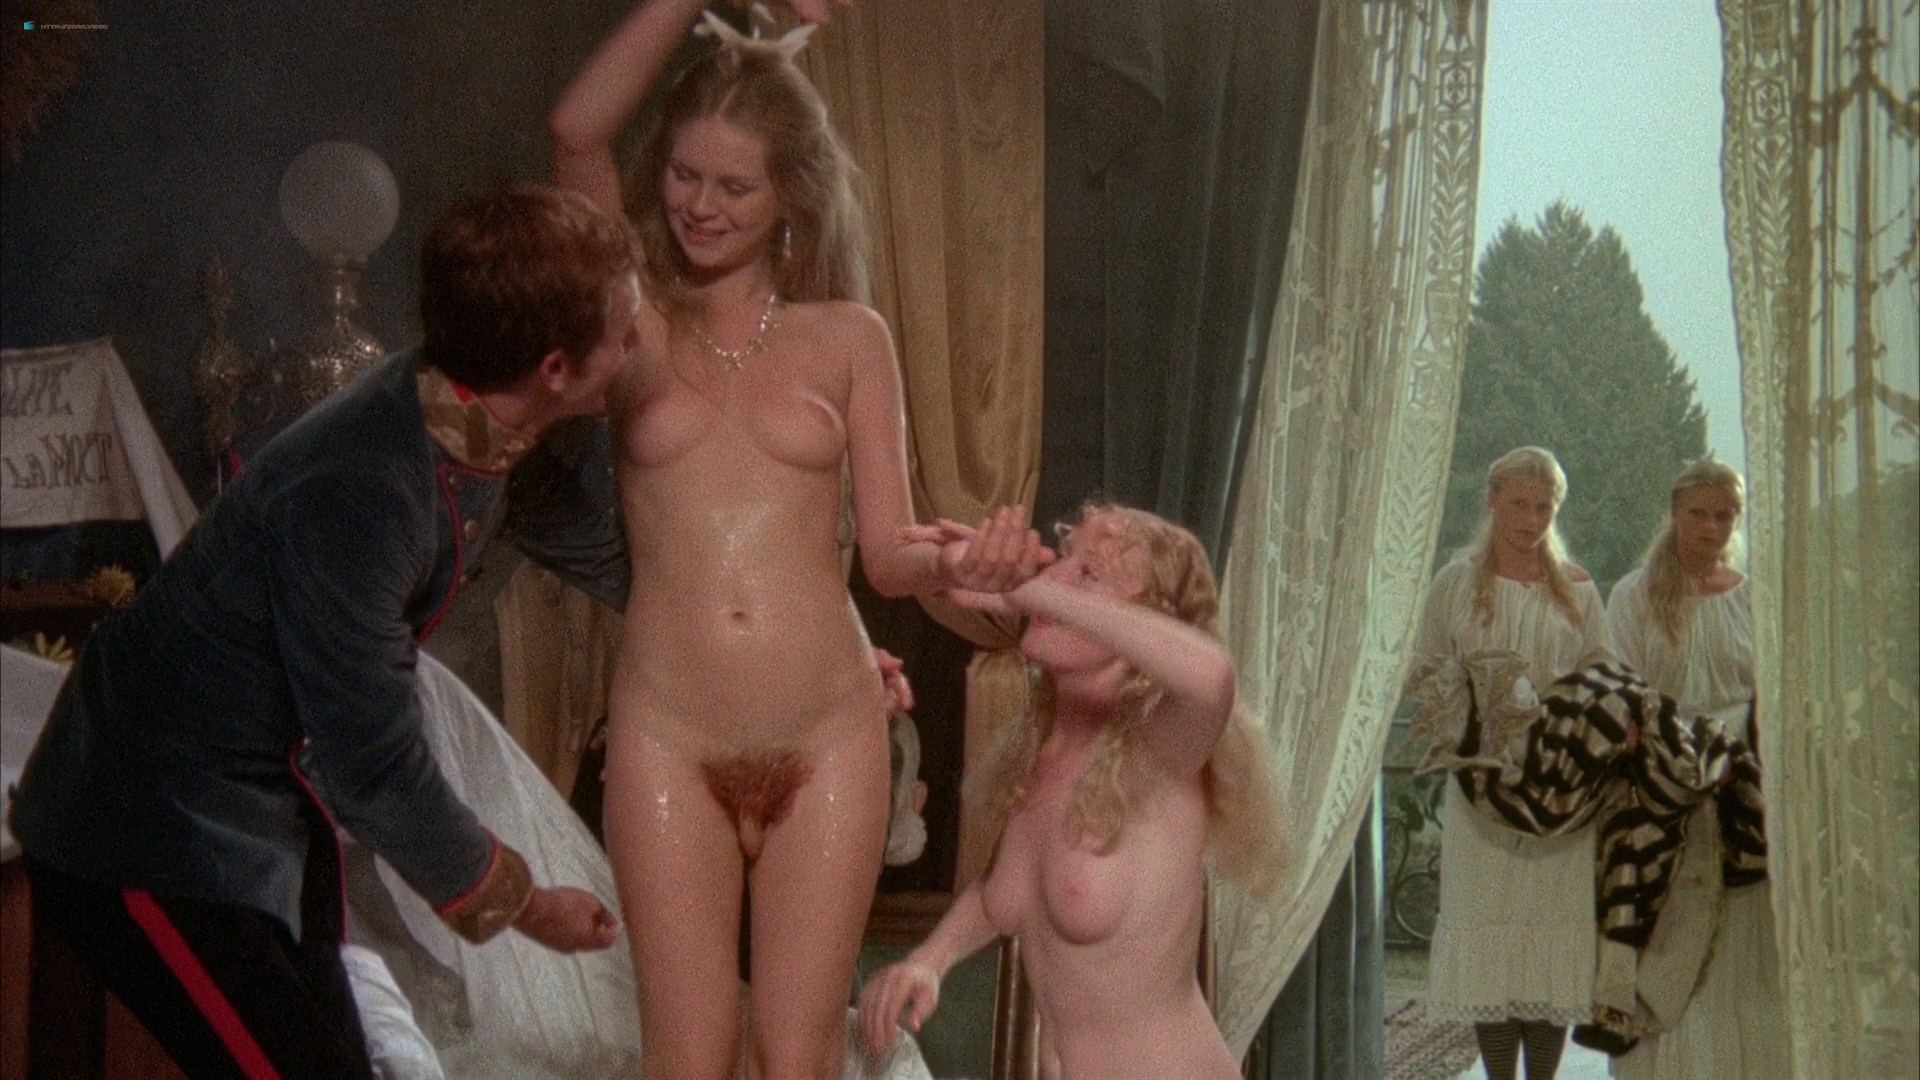 Emmanuelle 4 1984 with sylvia kristel and marylin jess 6